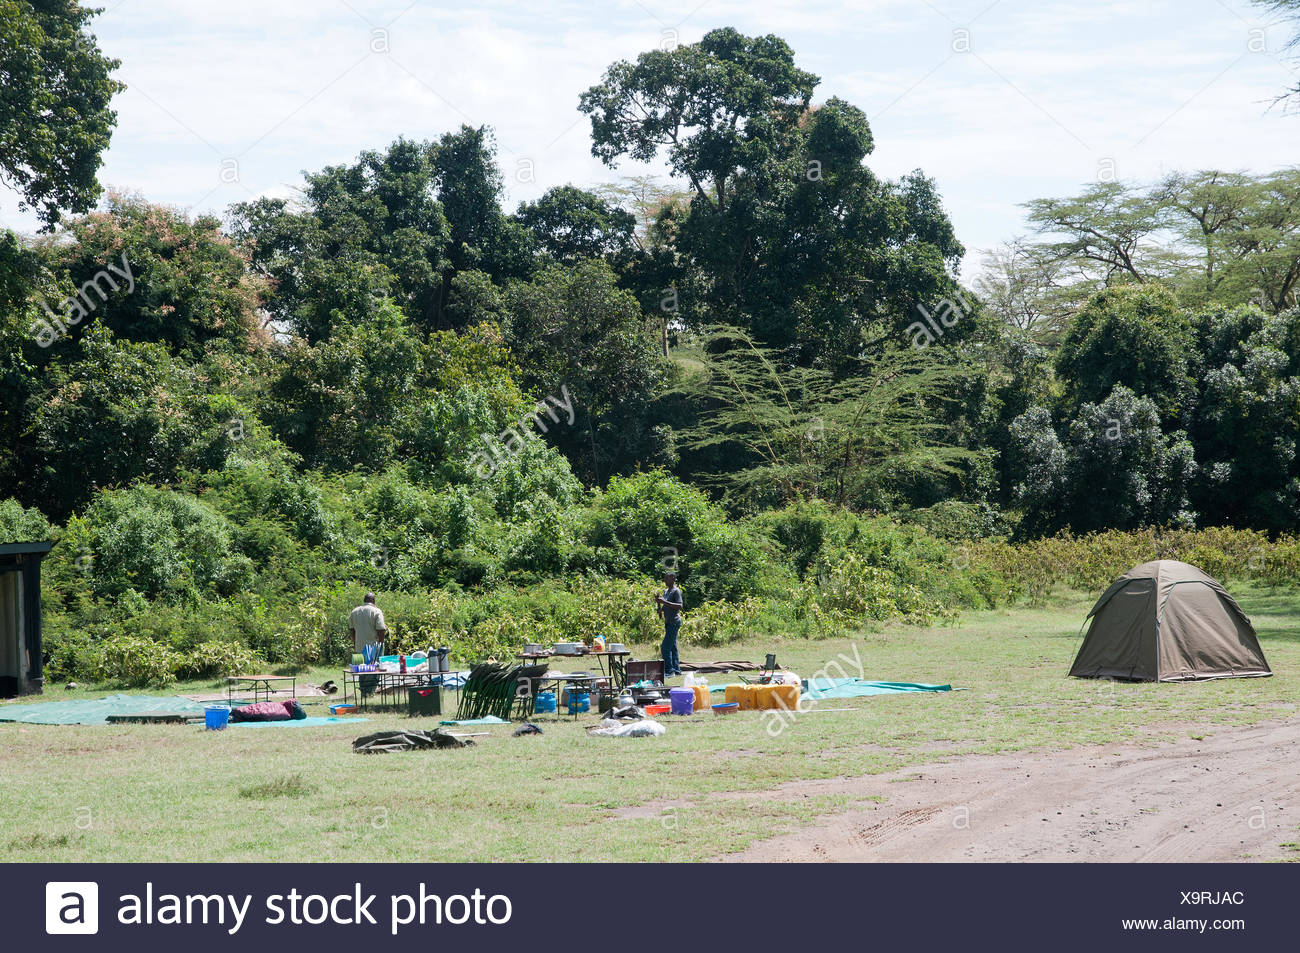 Staff working at striking camp and collecting kit on camp site near Makalia Falls in Lake Nakuru National Park Kenya East Africa - Stock Image